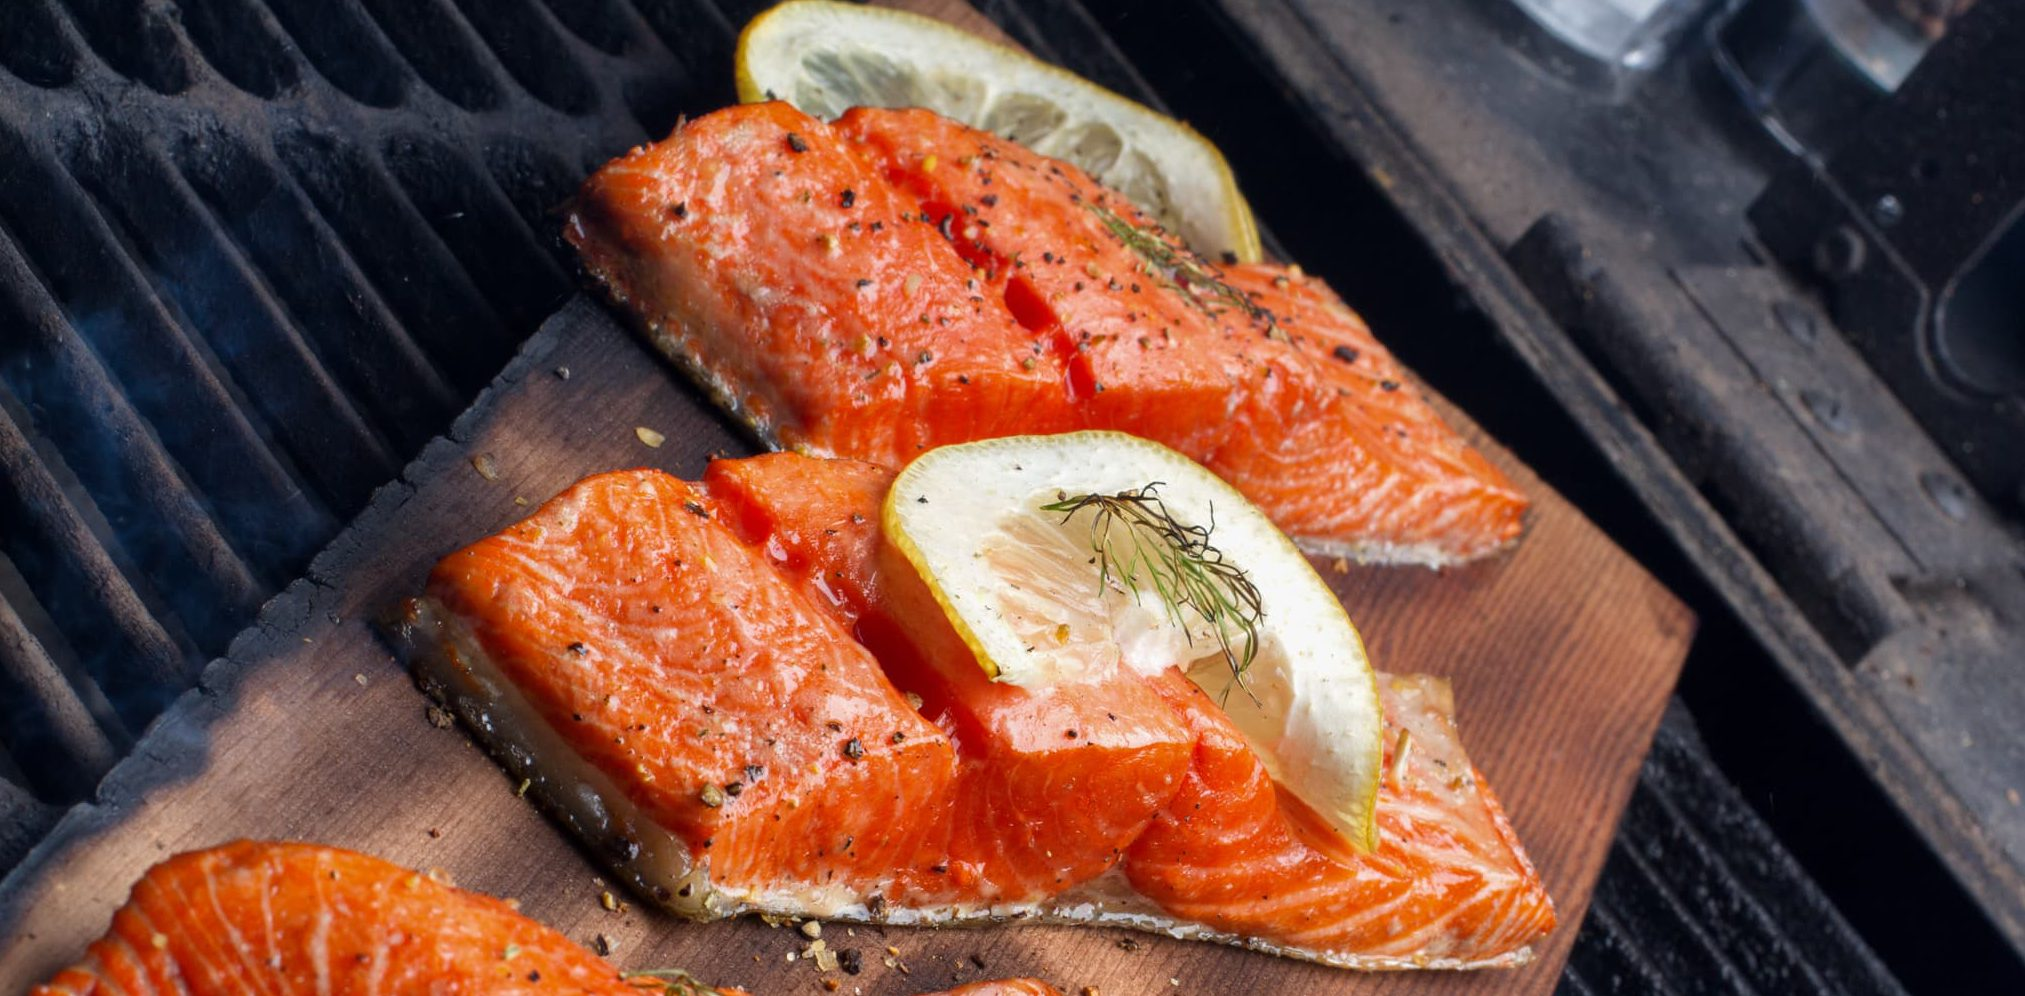 salmon fillets on a cedar plank on a grill with lemon